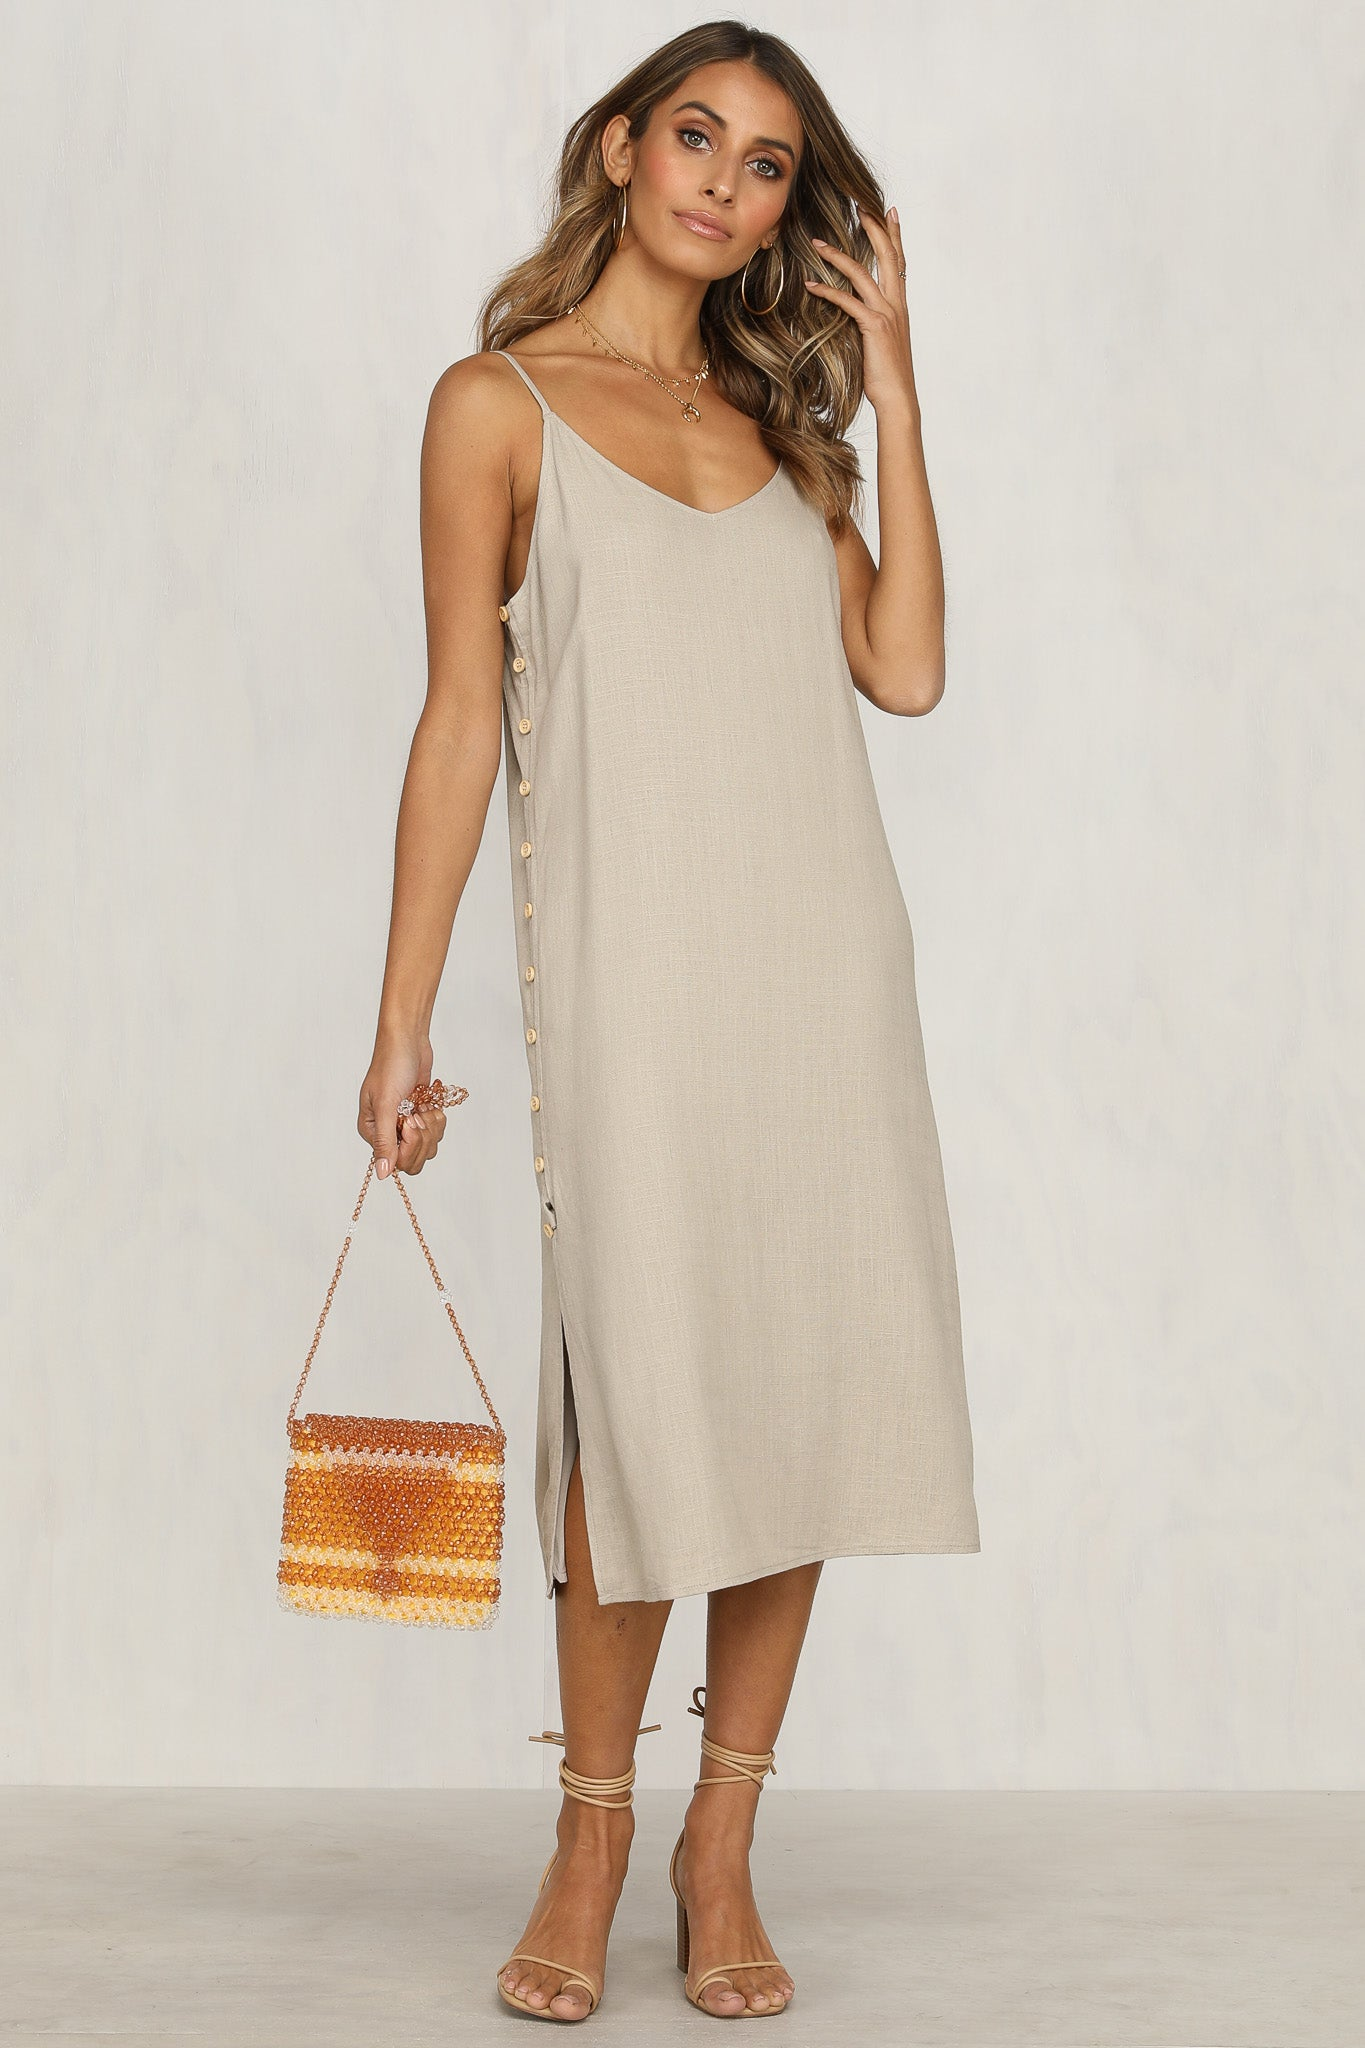 Joshua Tree Maxi Dress (Mocha)